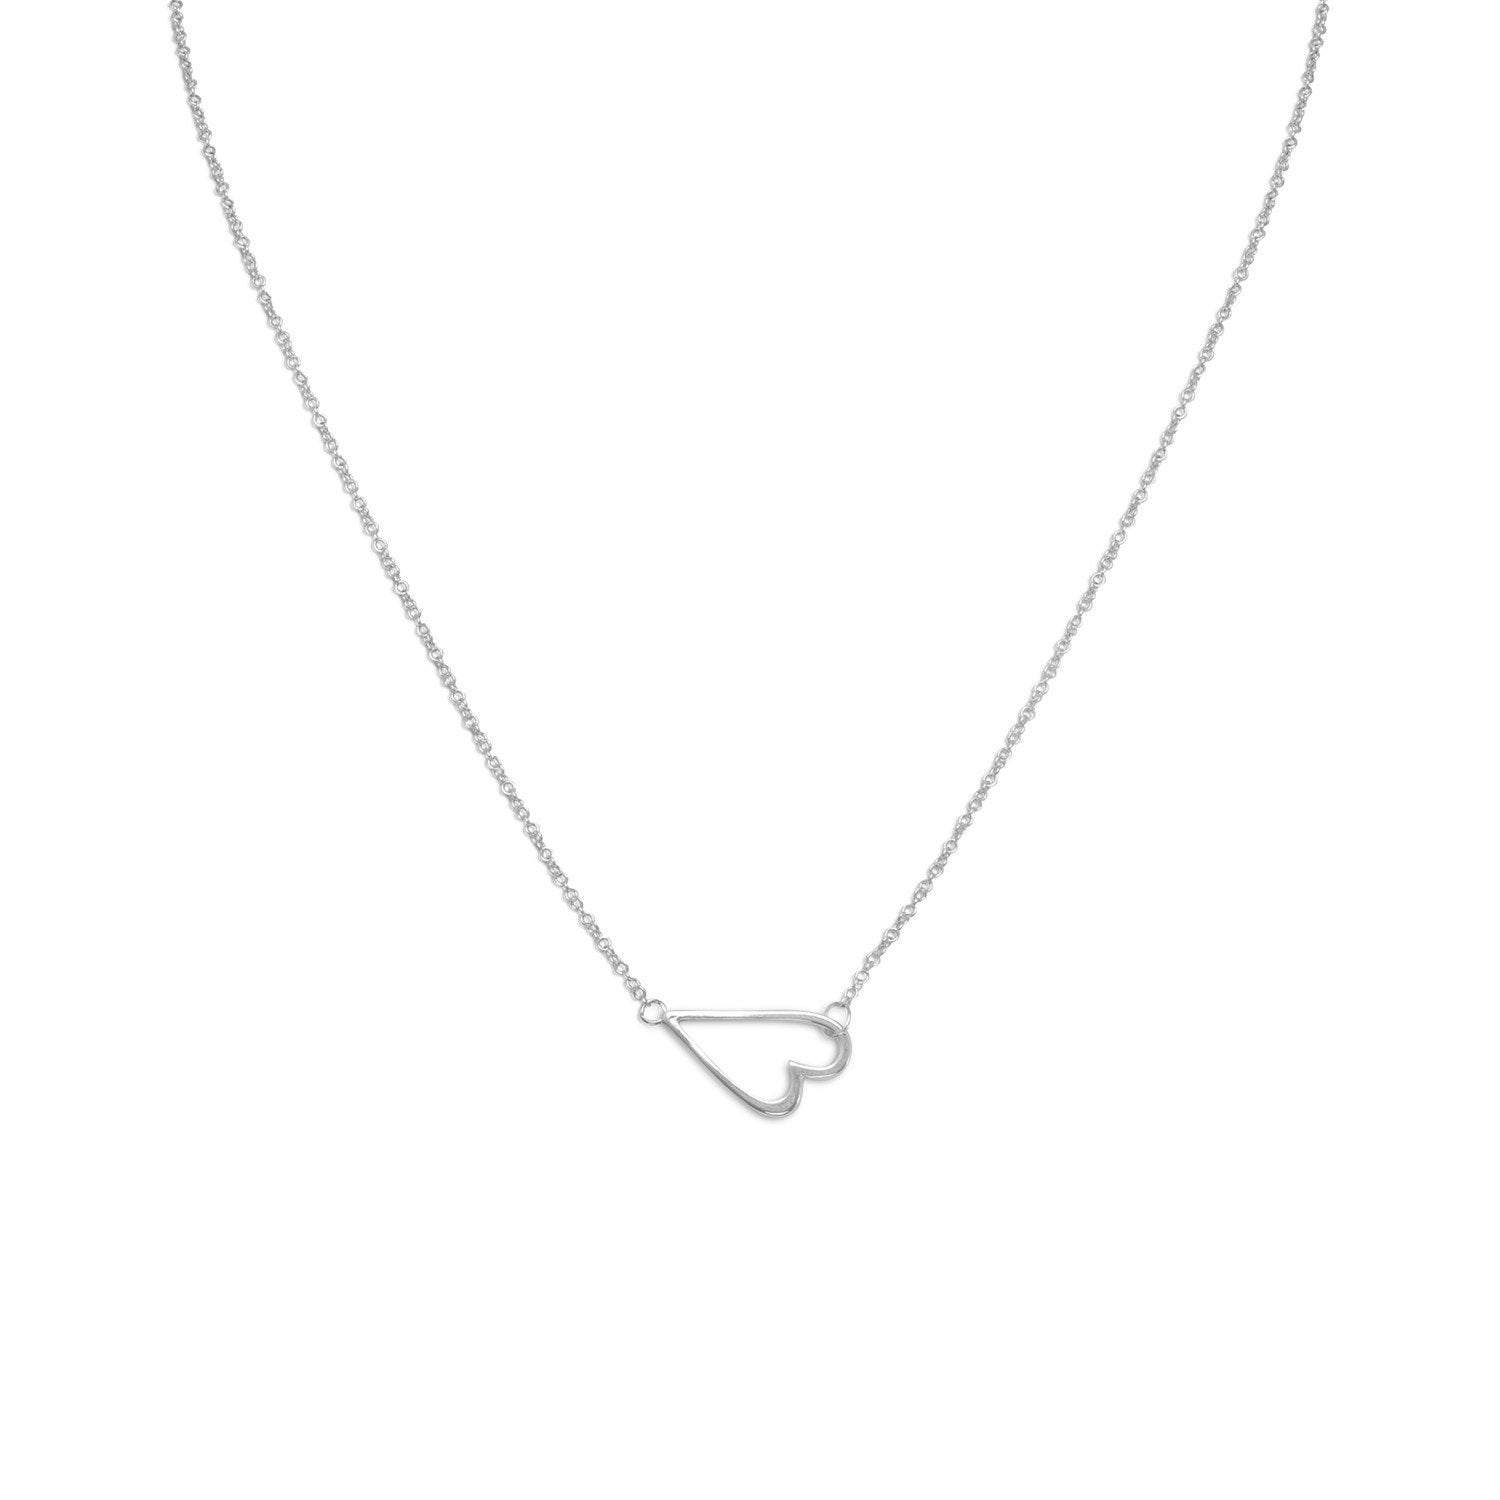 "16"" + 2"" Rhodium Plated Sideways Heart Necklace - Rocky Mt. Discount Outlet"